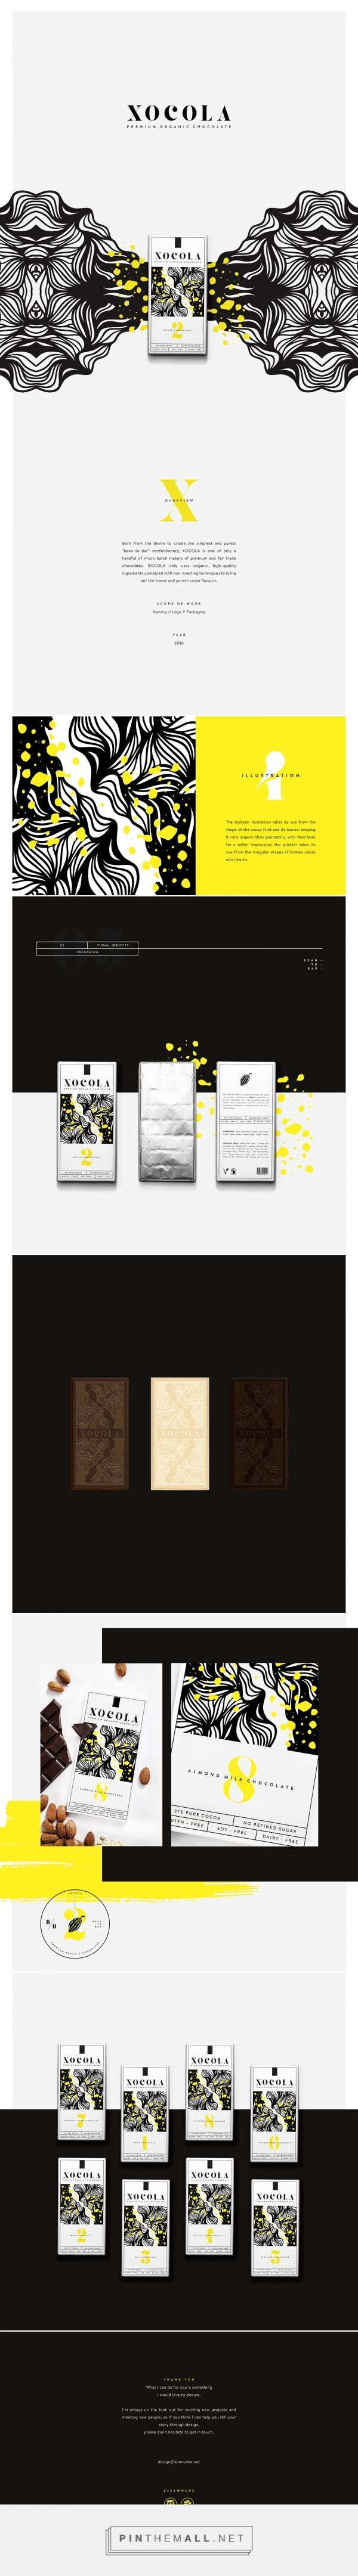 XOCOLA Organic Chocolate Packaging by Kimmy Lee | Fivestar Branding Agency – Design and Branding Agency & Curated Inspiration Gallery